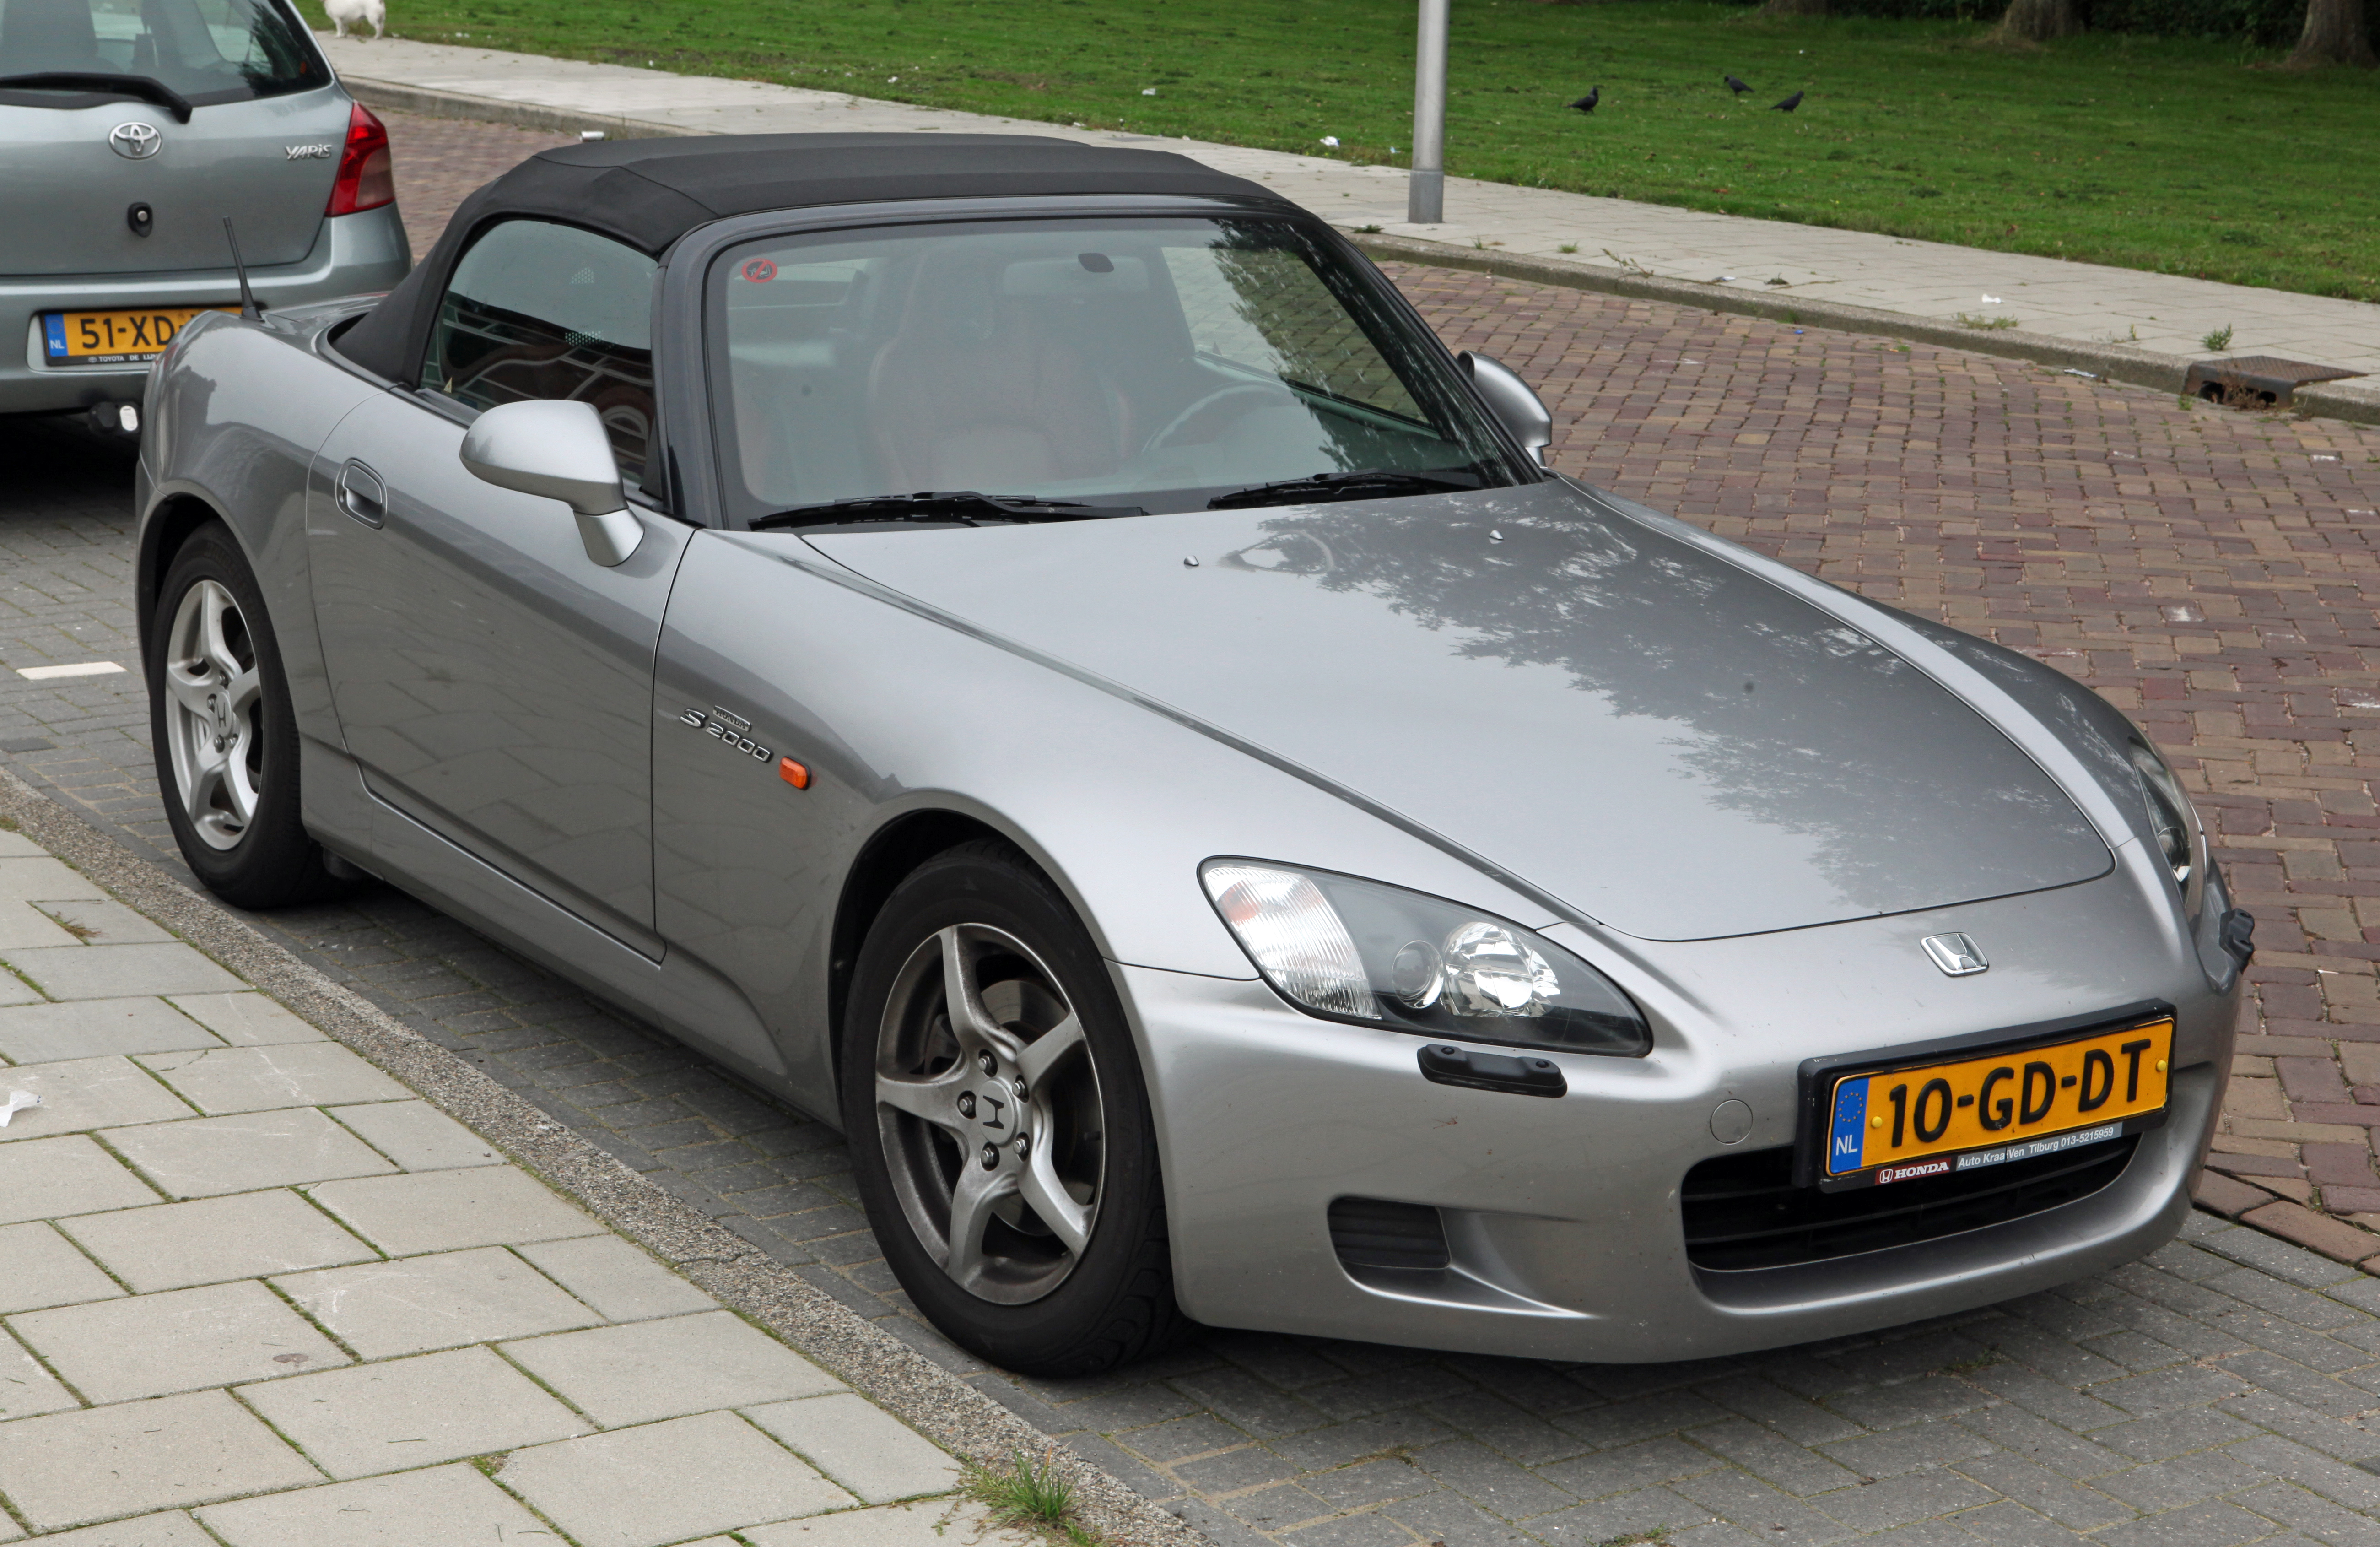 File year 2000 honda s 2000 9934080094 jpg wikimedia for Honda car 2000